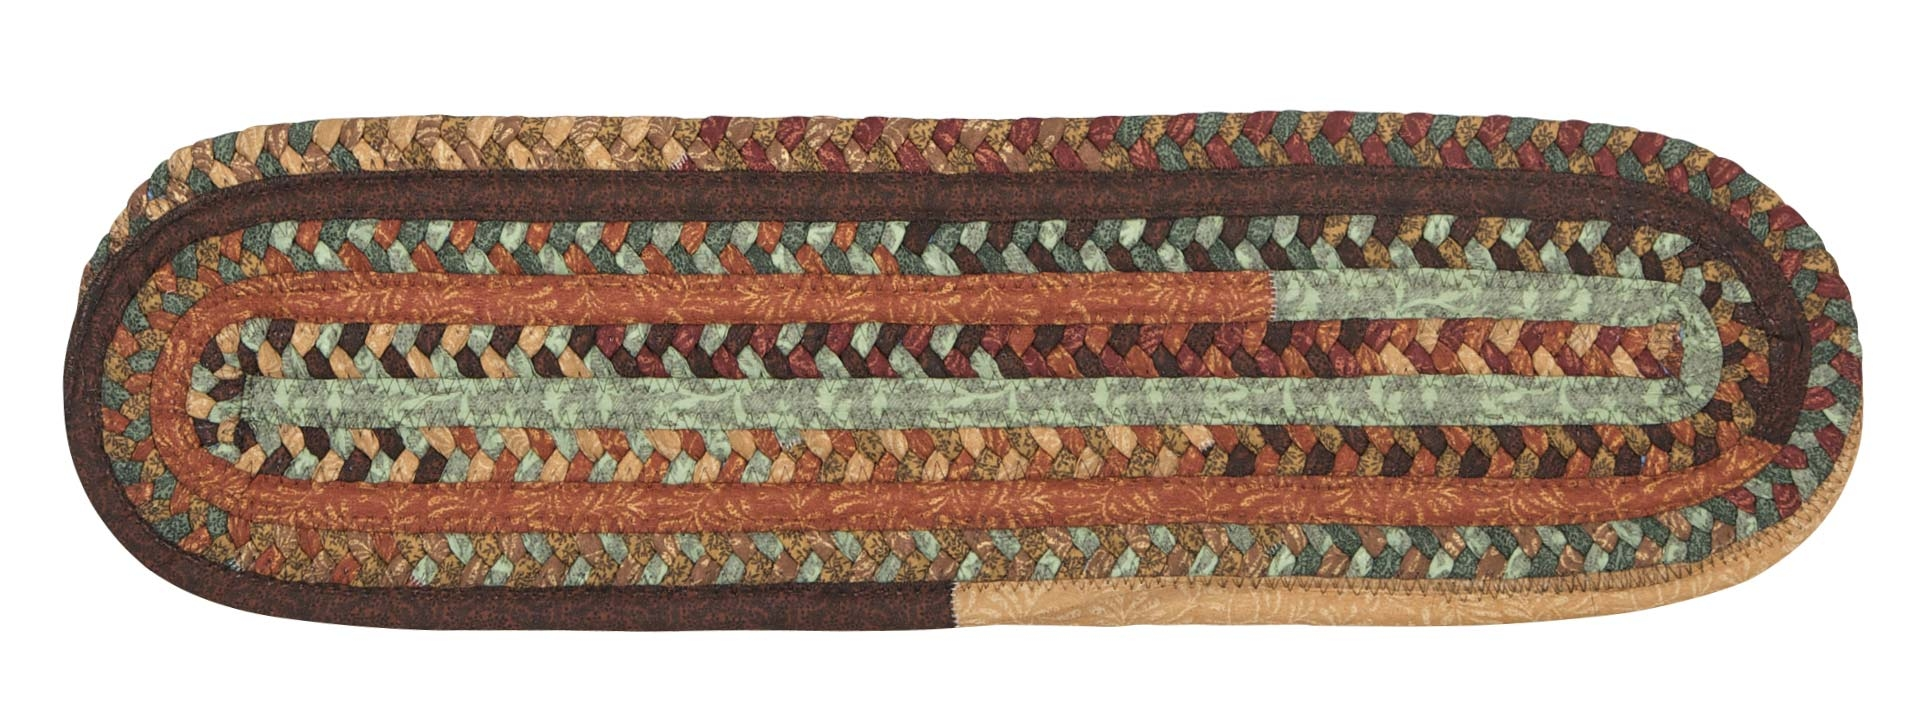 Olivera Stair Treads Colonial Mills Cmi Braided Rugs Outdoor With Regard To Colonial Mills Stair Tread Rugs (#12 of 20)